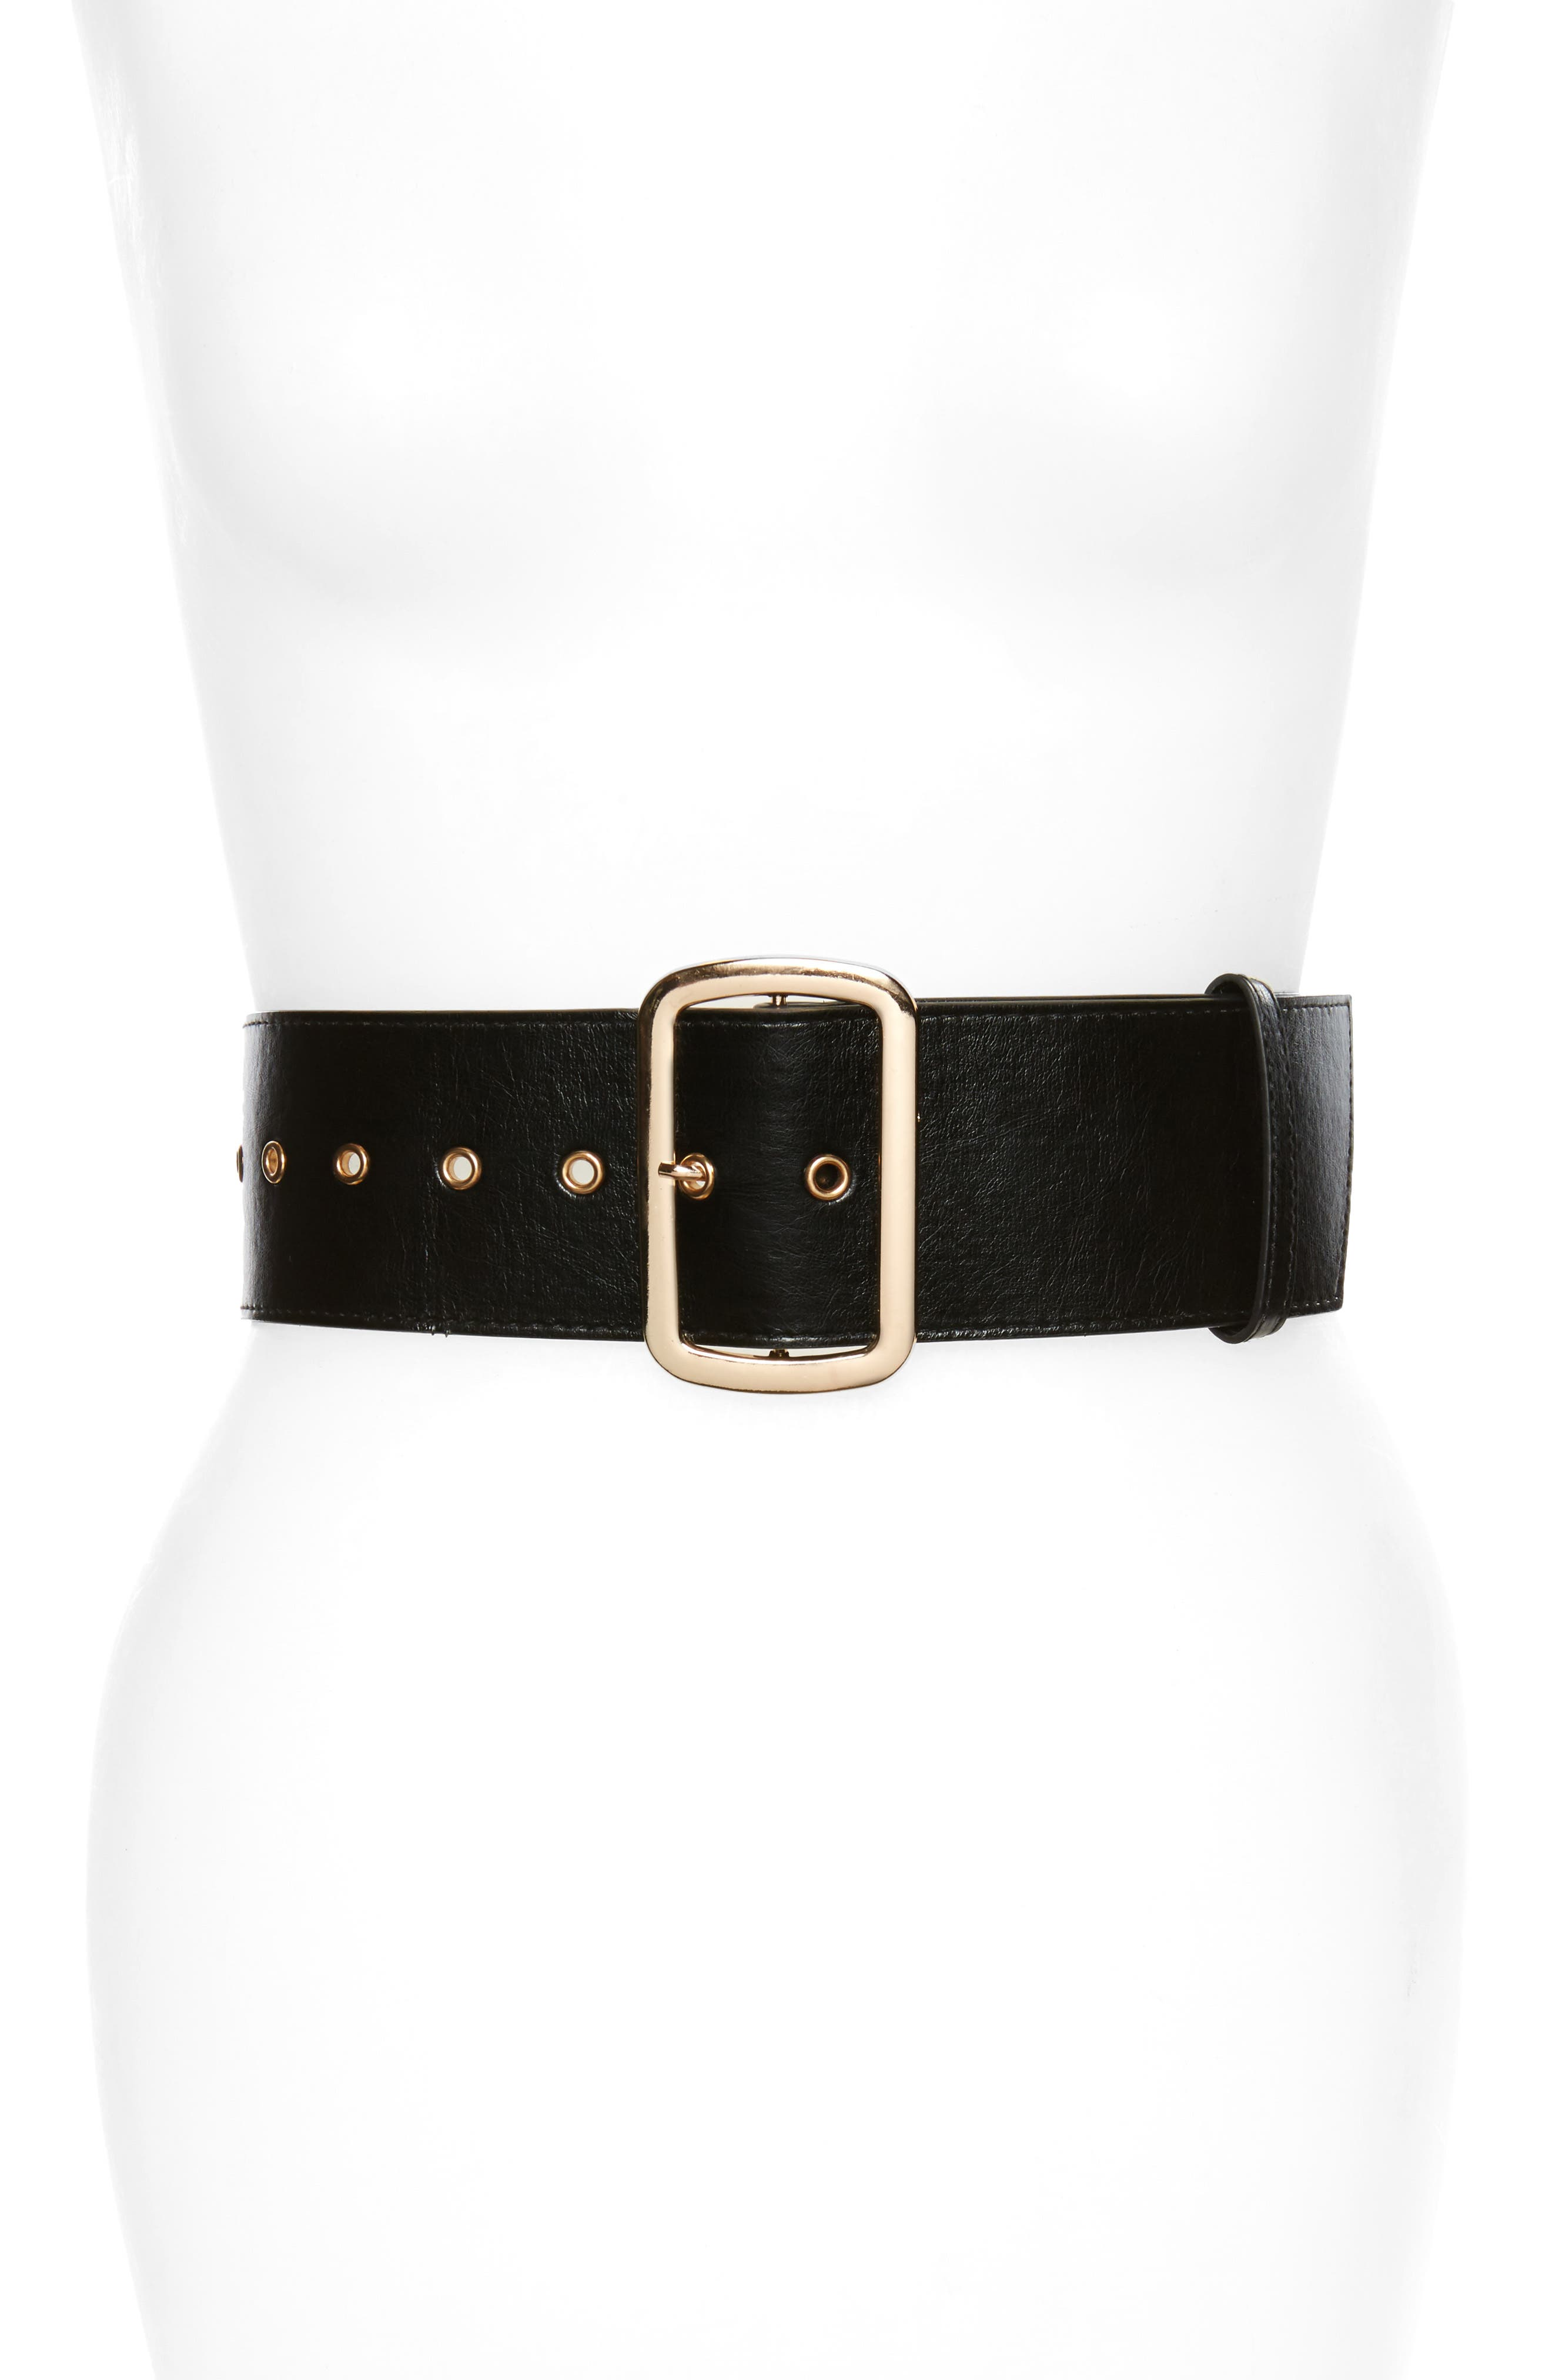 Alternate Image 1 Selected - Accessory Collective Square Buckle Faux Leather Belt